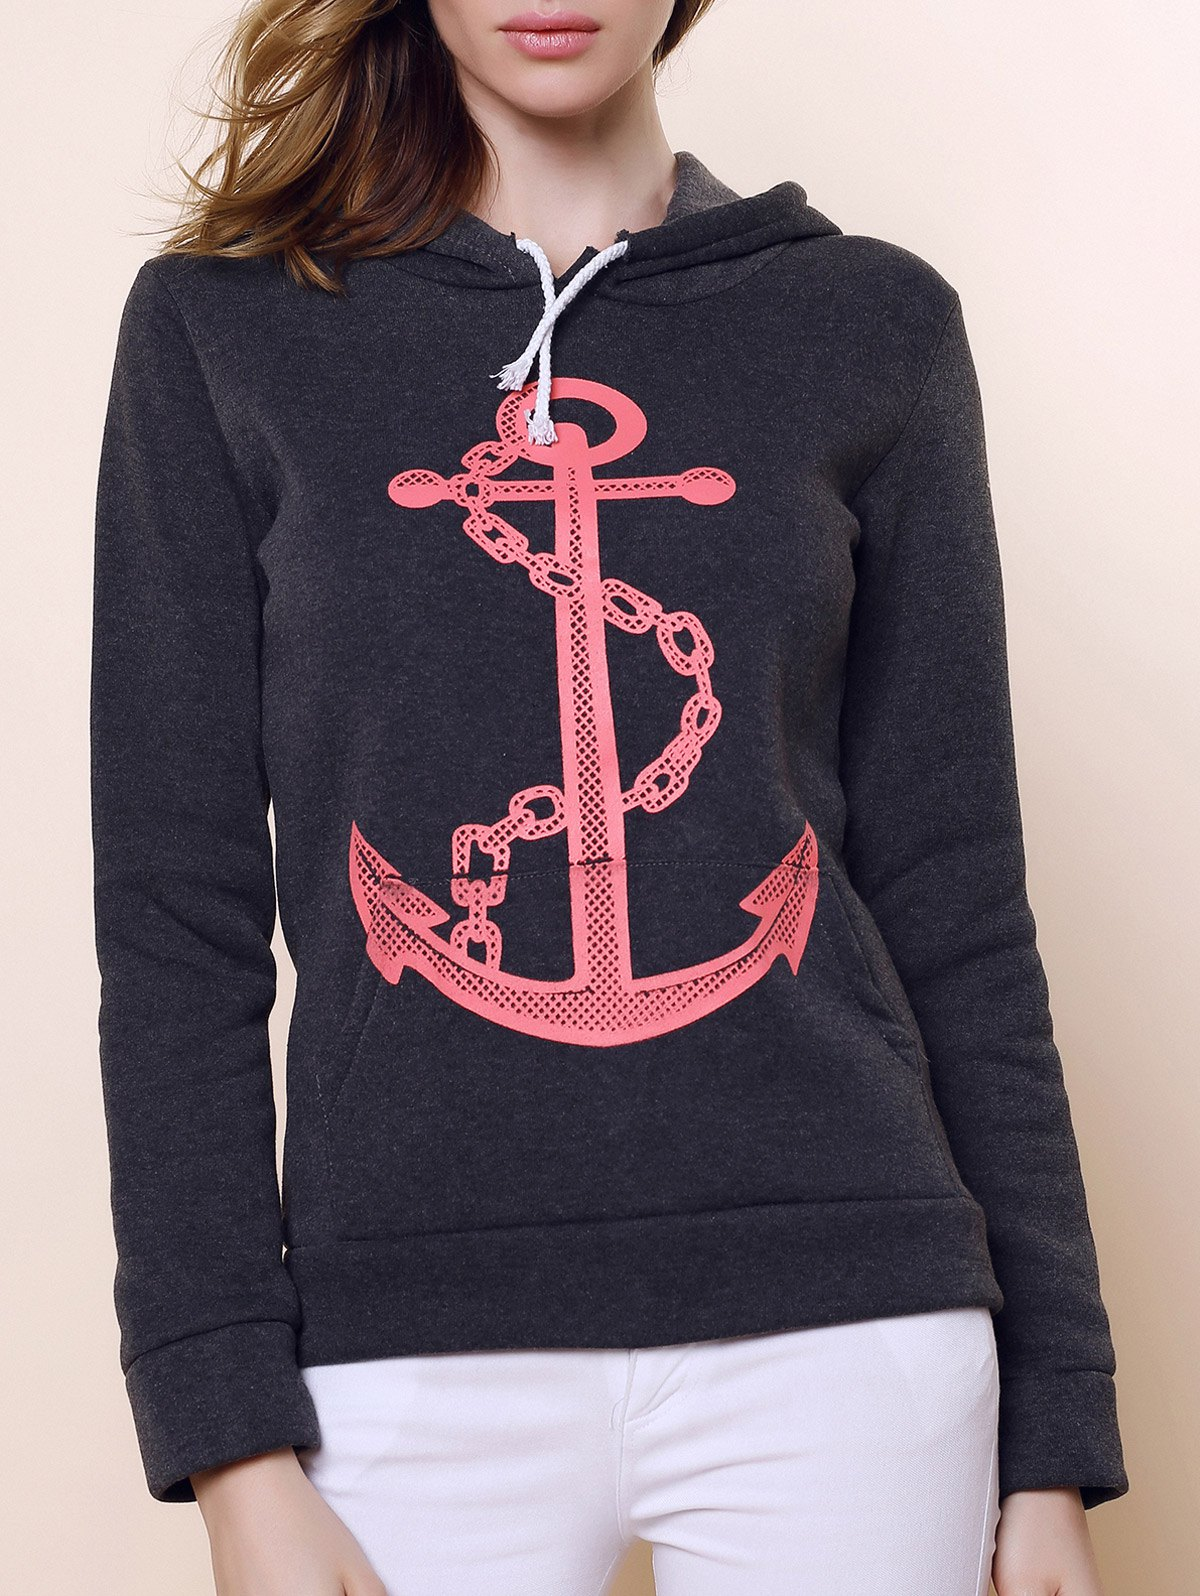 Casual Anchor Print Hooded Long Sleeve Hoodie For Women bosch phg 600 3 060329 b 008